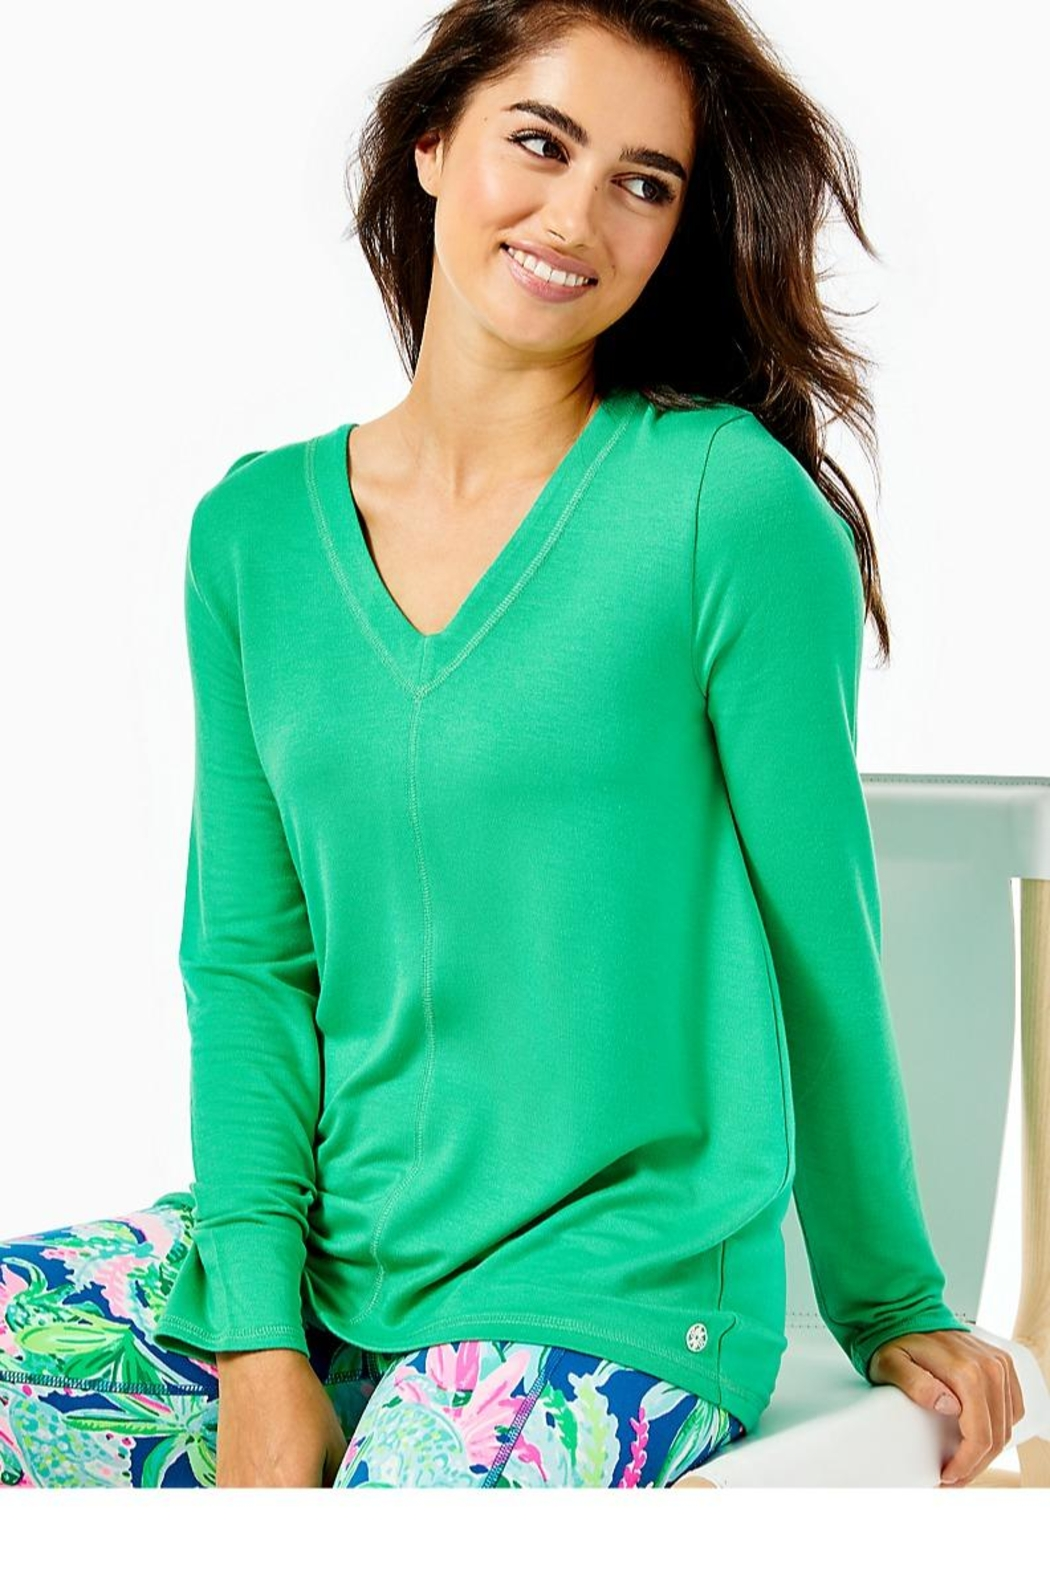 Lilly Pulitzer Luxletic Areli Pullover - Main Image